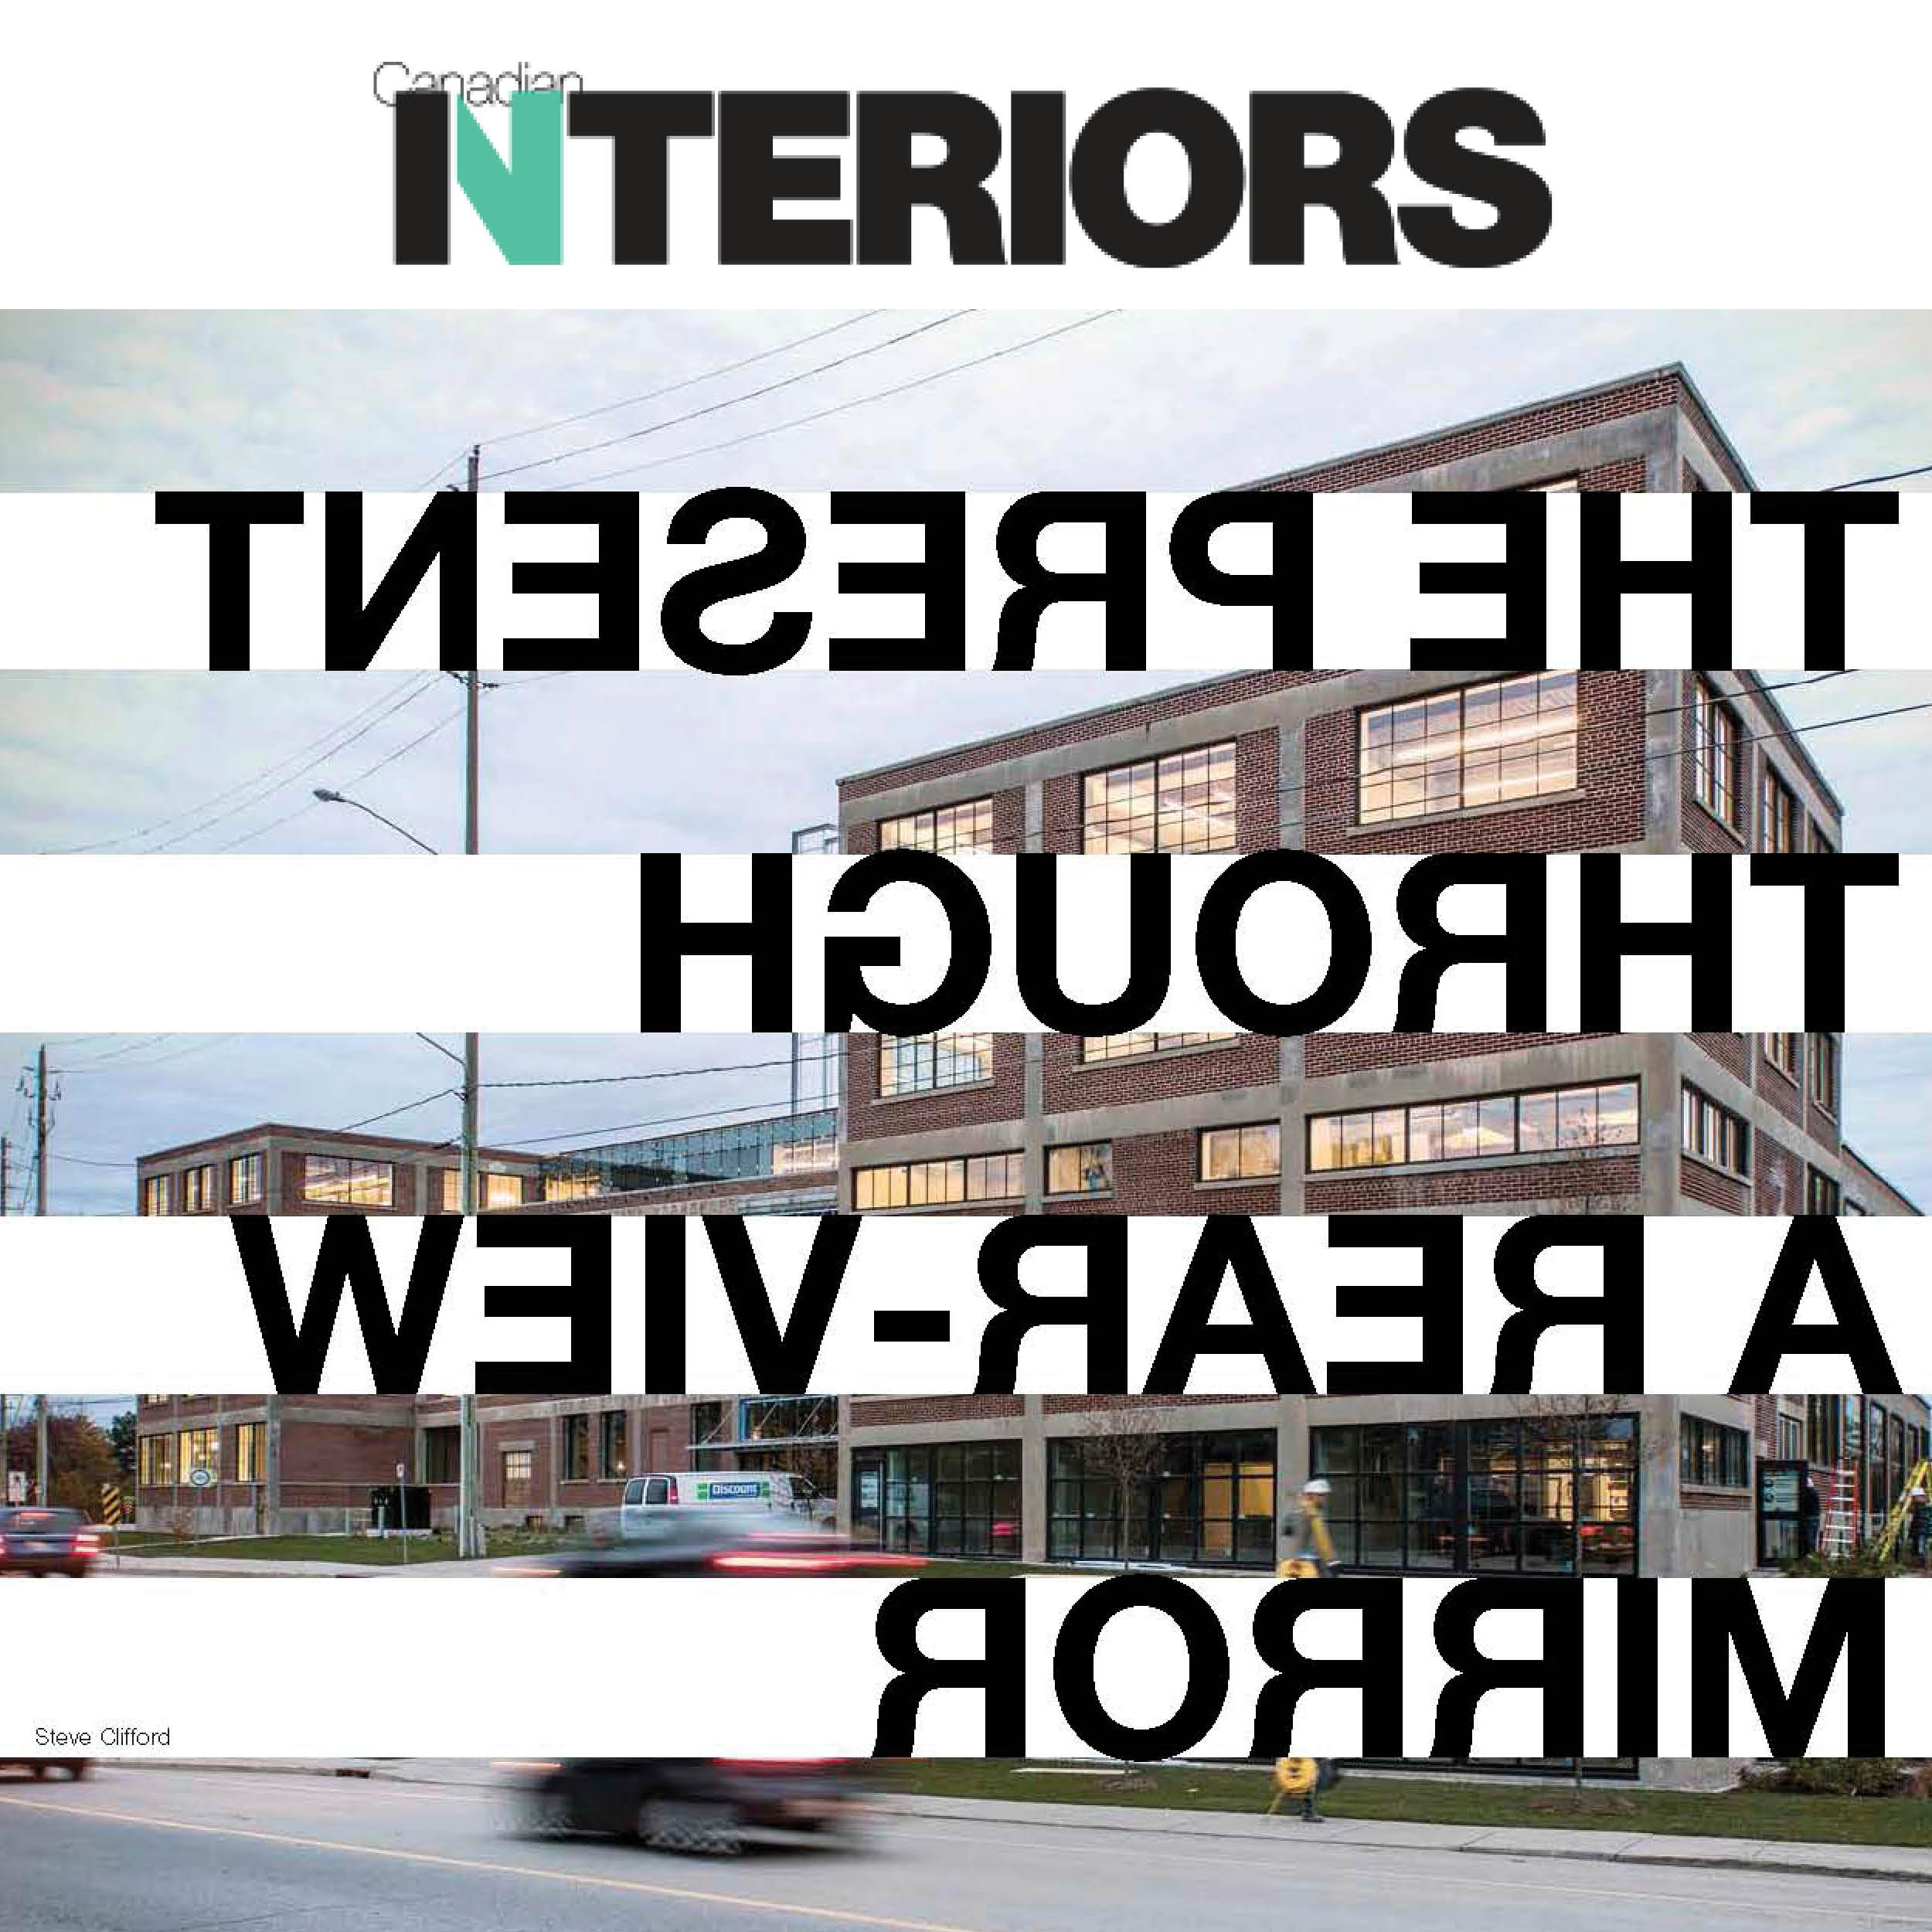 "Canadian Interiors magazine logo and the cover story headline ""The present through a rearview mirror"" written backwards."